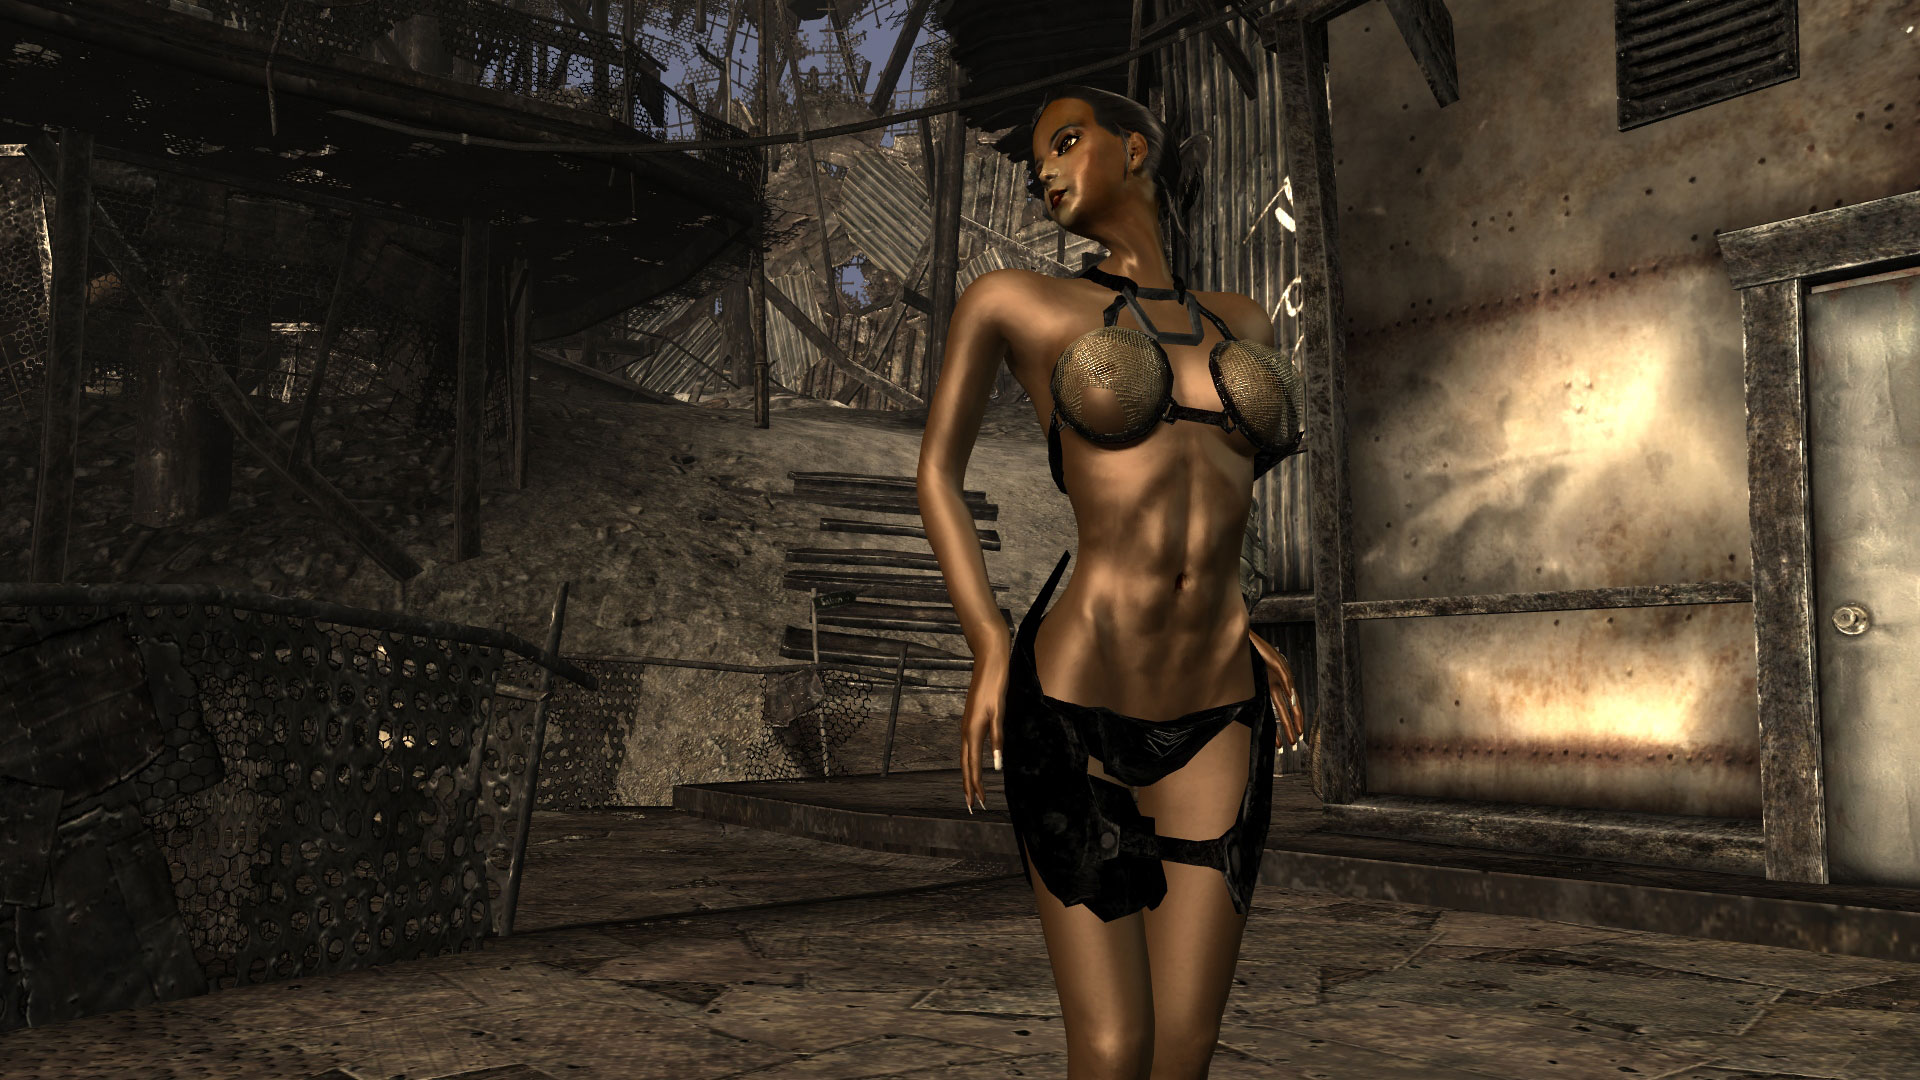 Fallout 3 fetish lingerie mod erotic picture